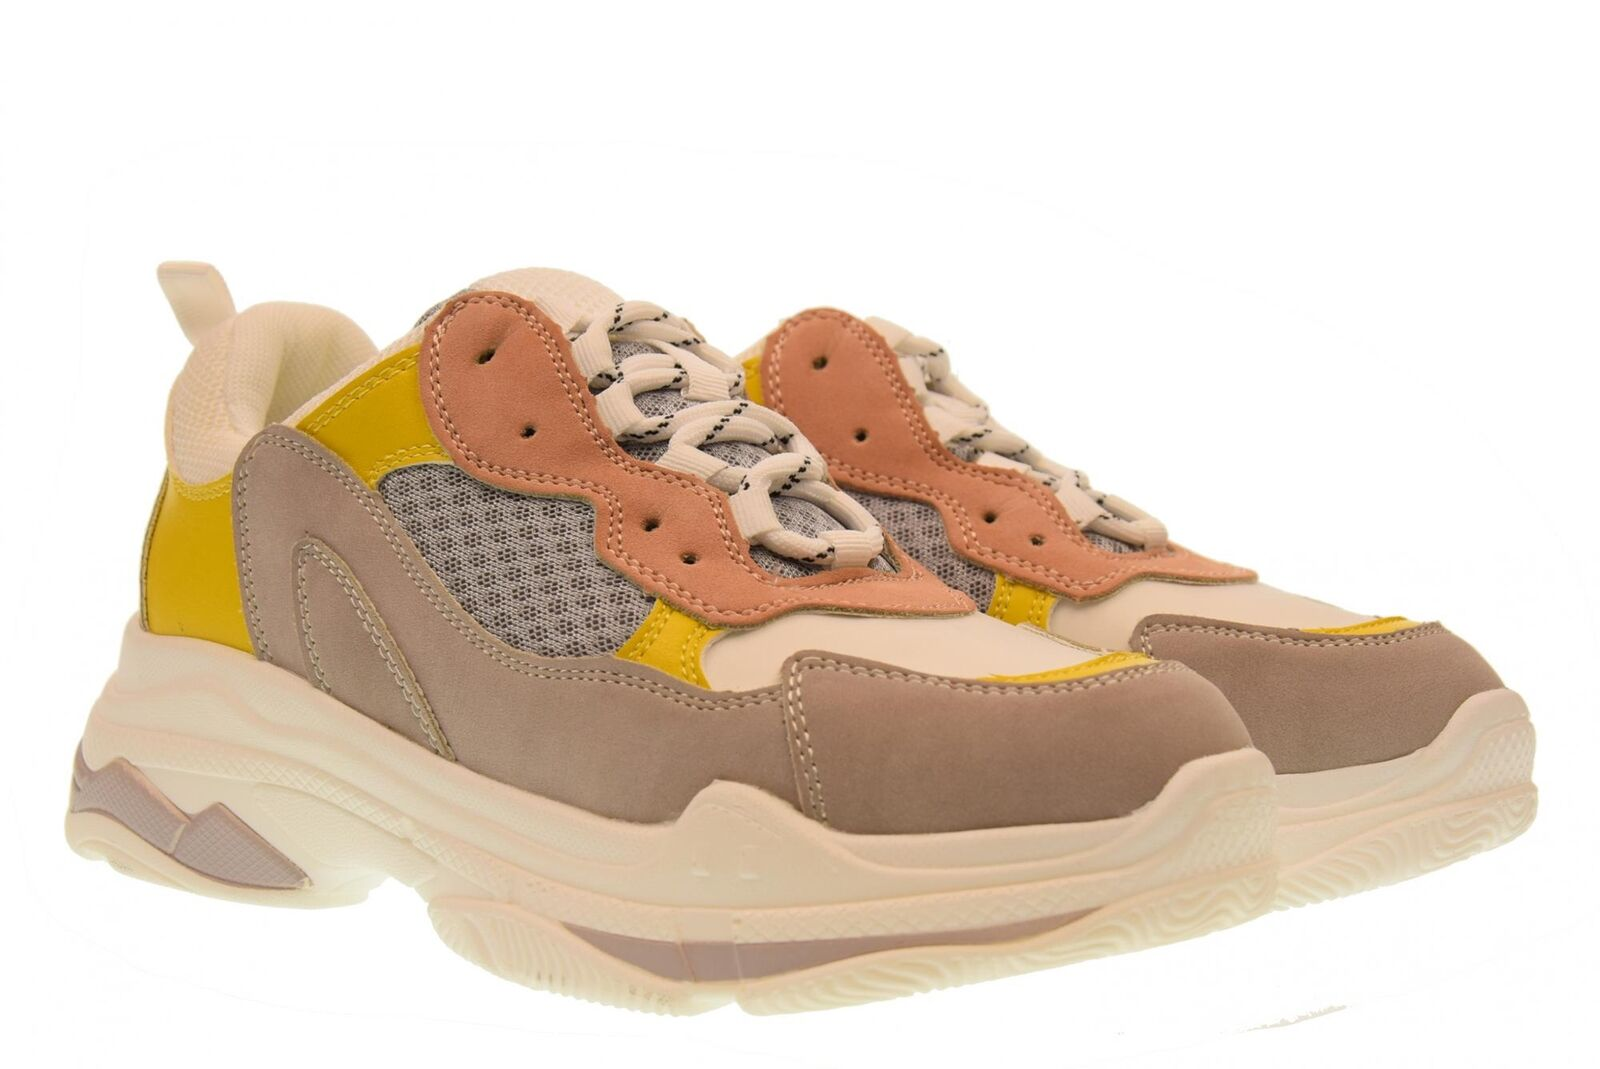 Or&or A18f chaussures femme baskets basses gt529 jaune-gris